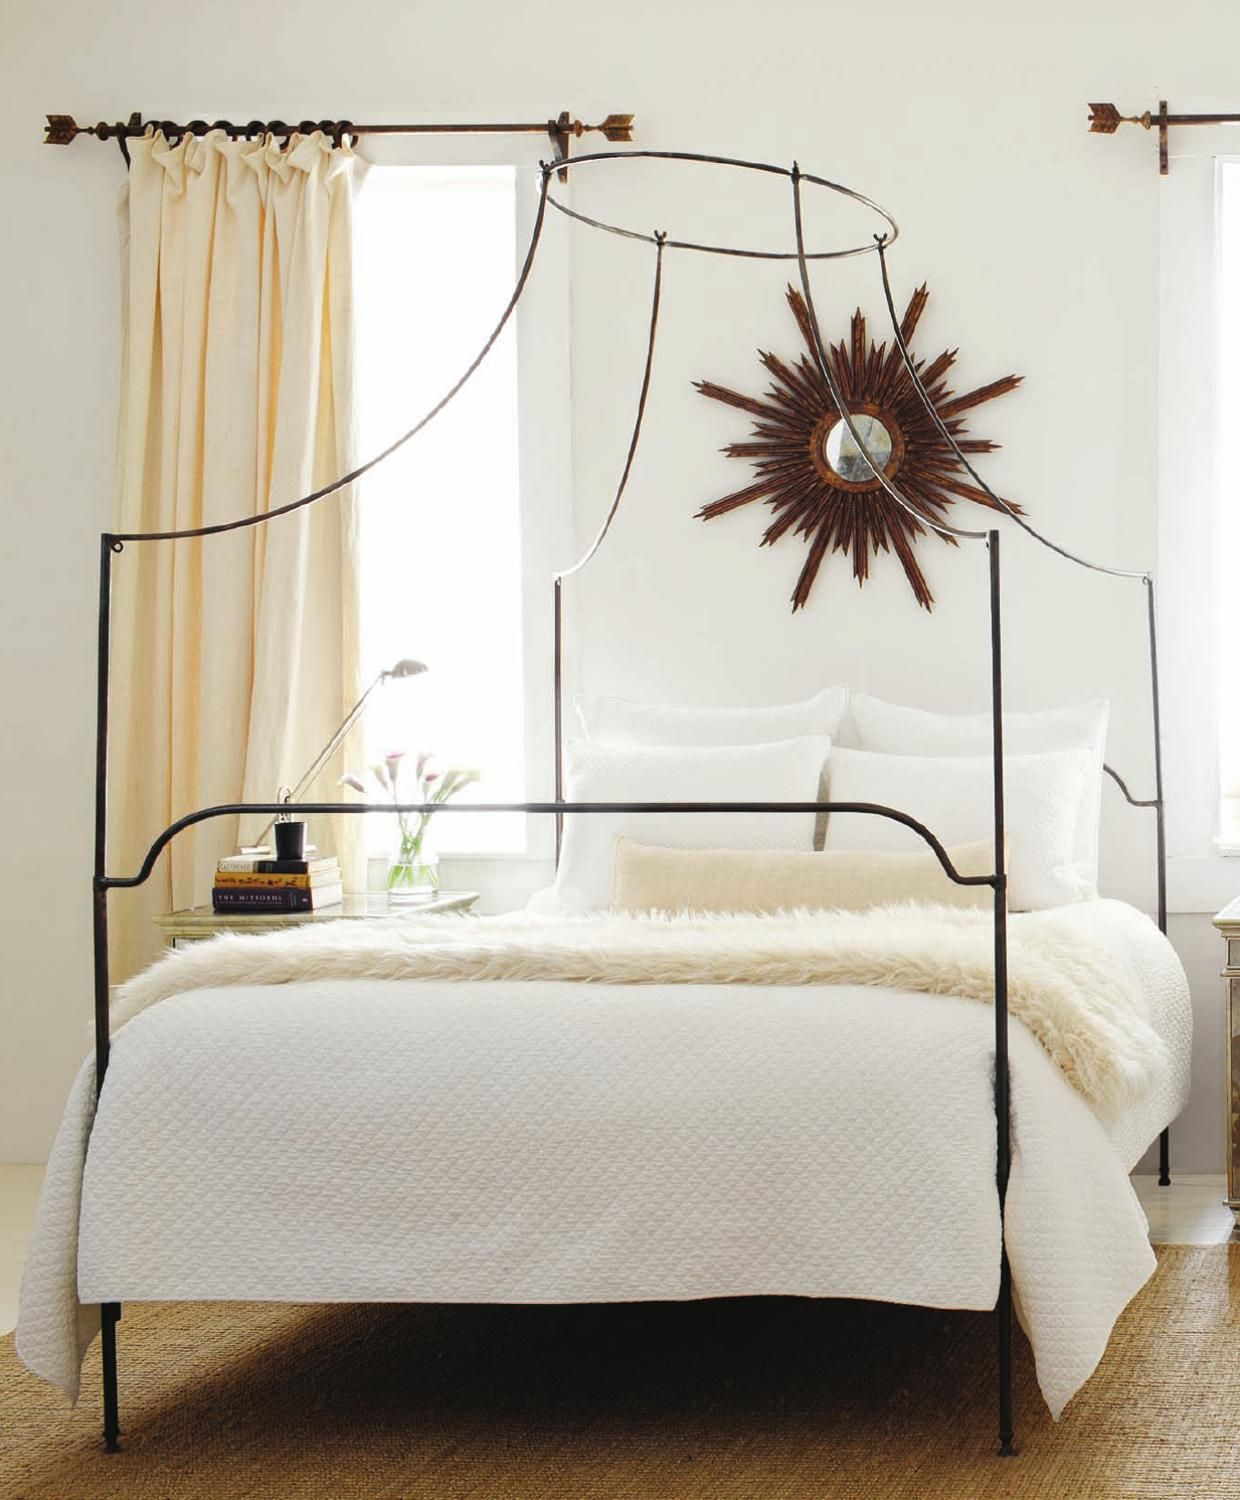 Atlanta Homes & Lifestyles Metal canopy bed, Bed canopy